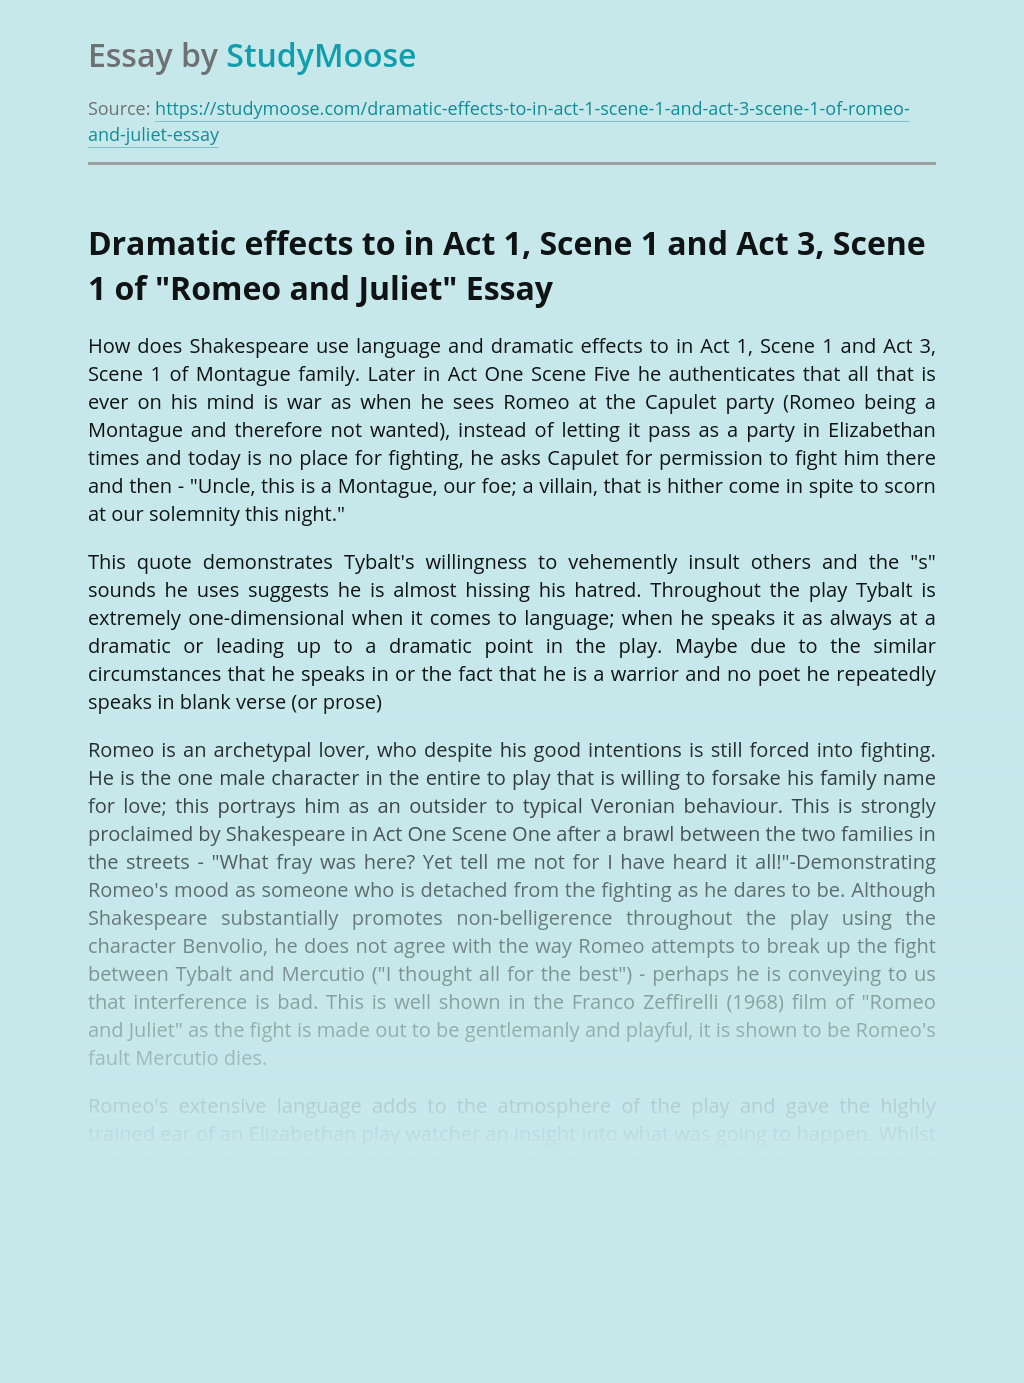 """Dramatic effects to in Act 1, Scene 1 and Act 3, Scene 1 of """"Romeo and Juliet"""""""